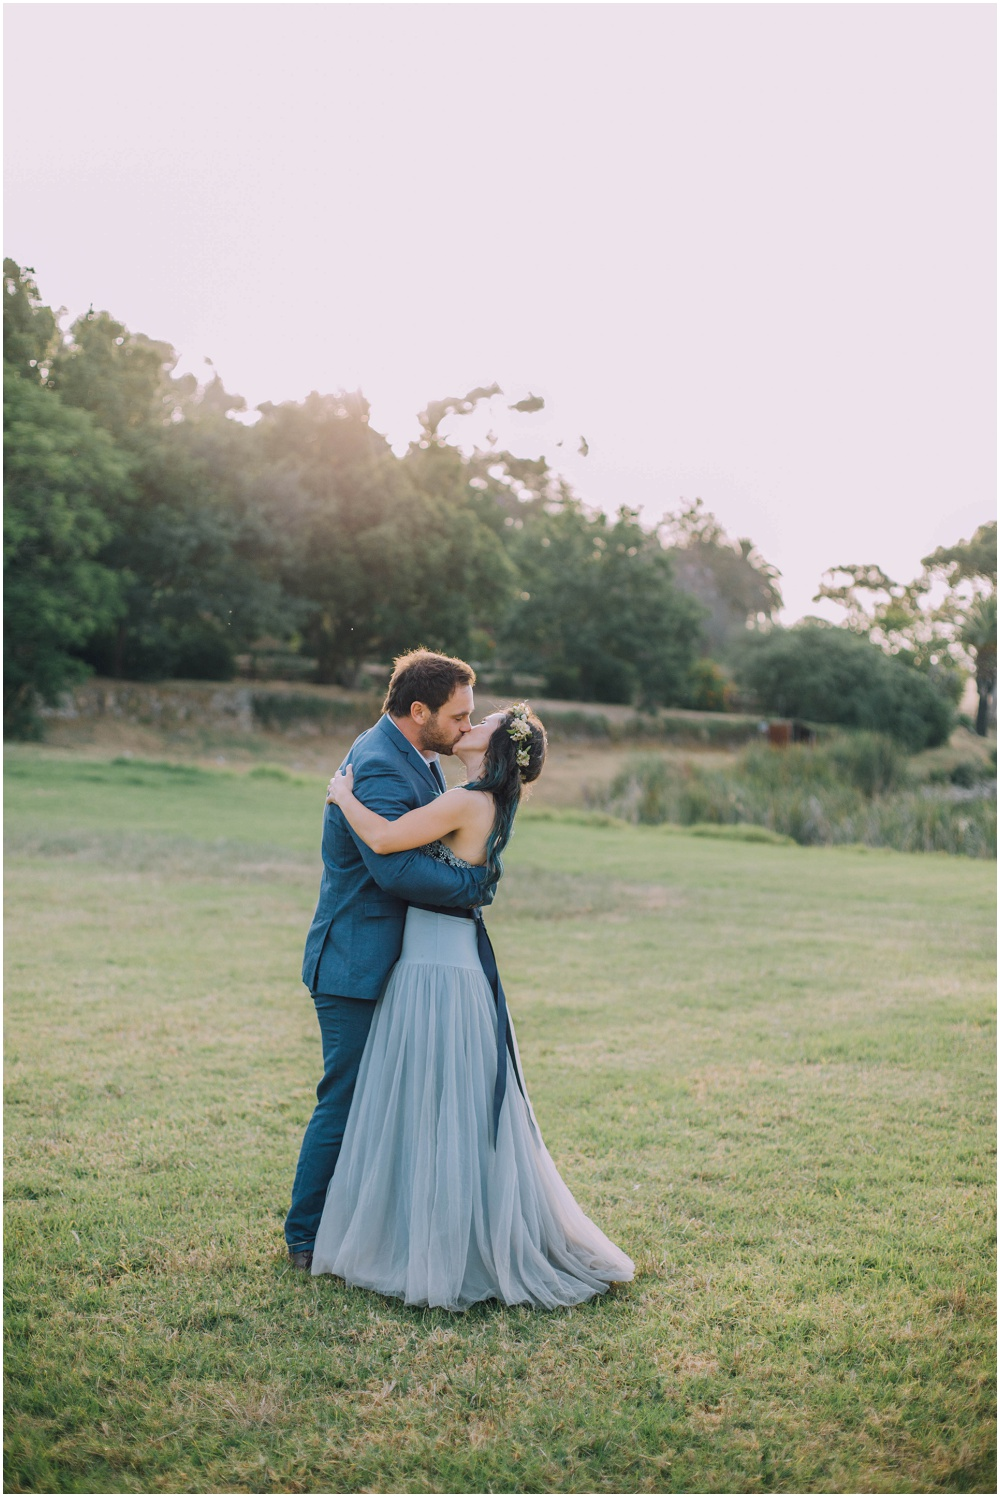 Ronel Kruger Cape Town Wedding and Lifestyle Photographer_5191.jpg